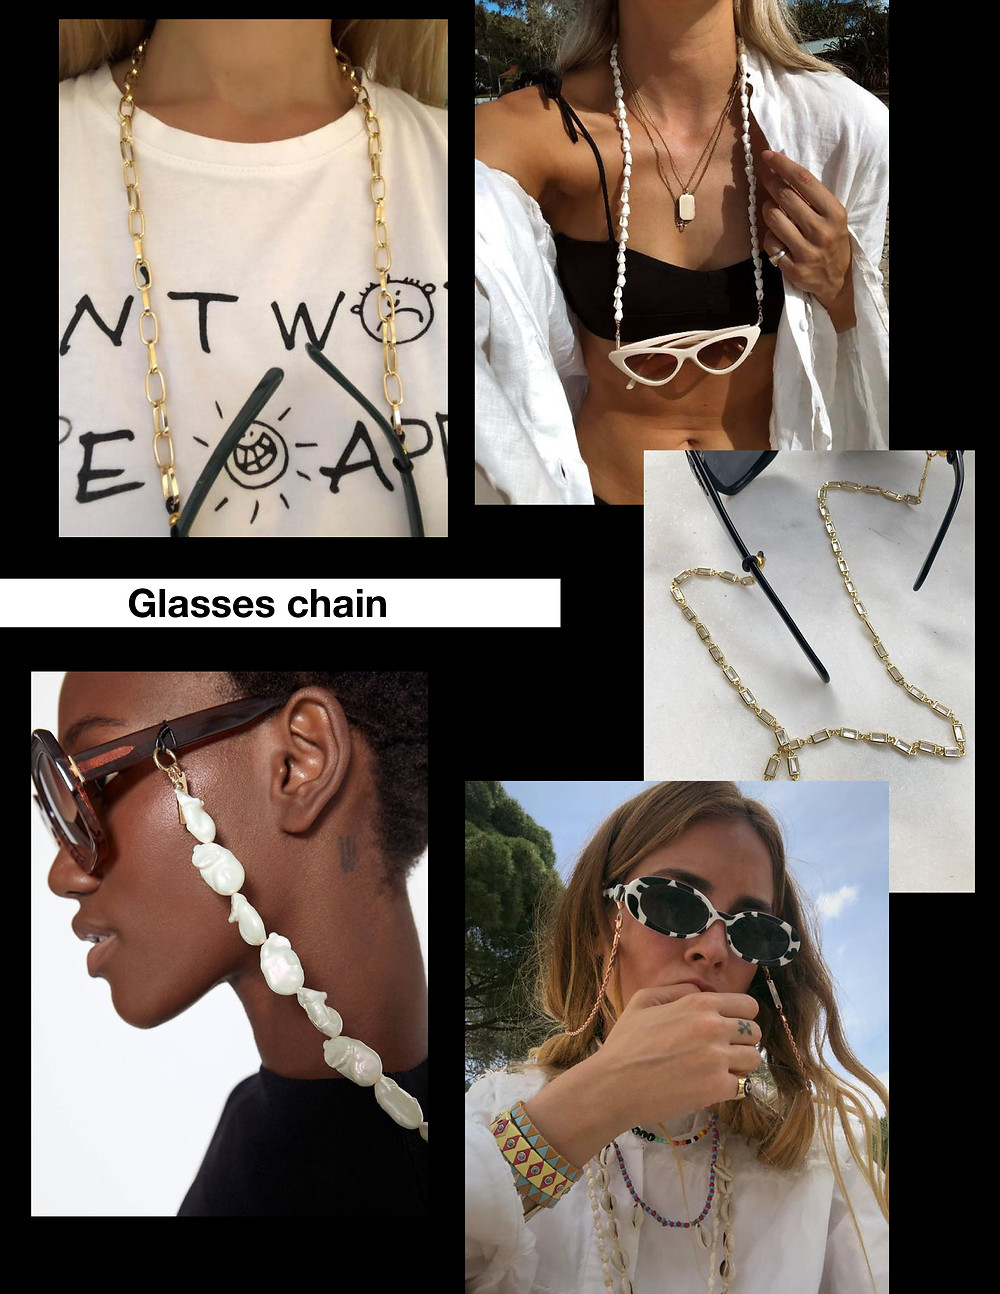 Sunglasses, glasses chain, trends, summer, fashion, style, stylist, shopping